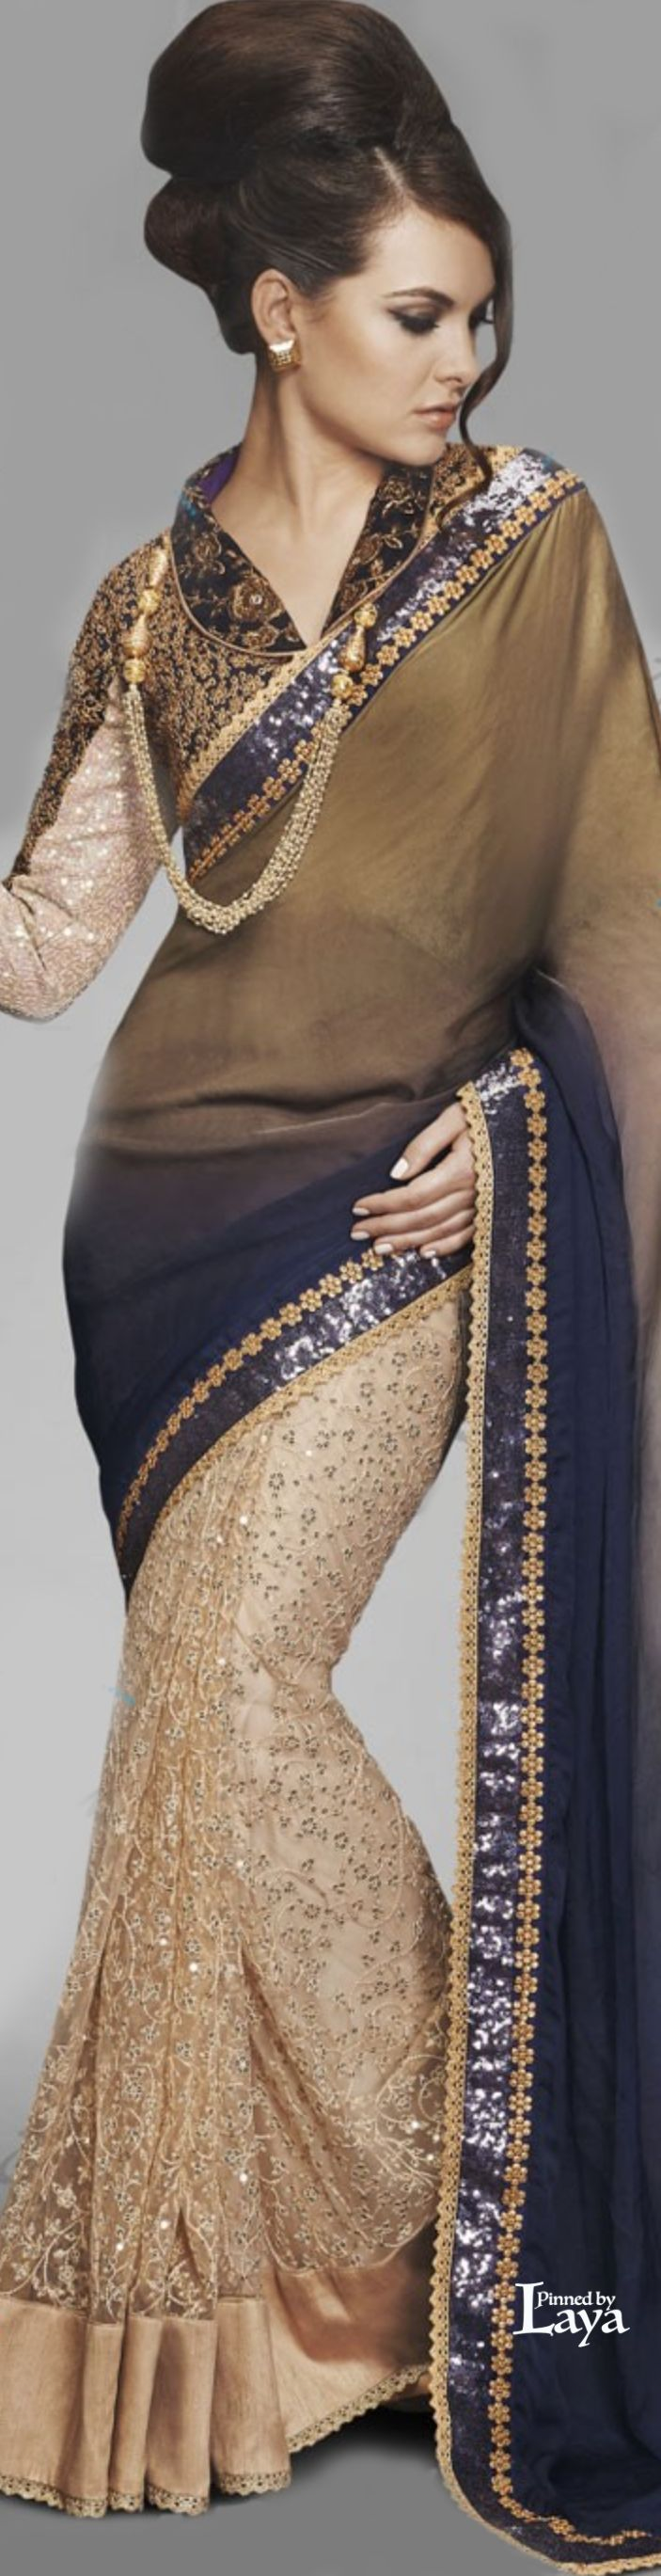 ♔LAYA♔BEIGE & BLUE LATEST INDIAN DESIGNER HALF HALF SAREE♔♔♔